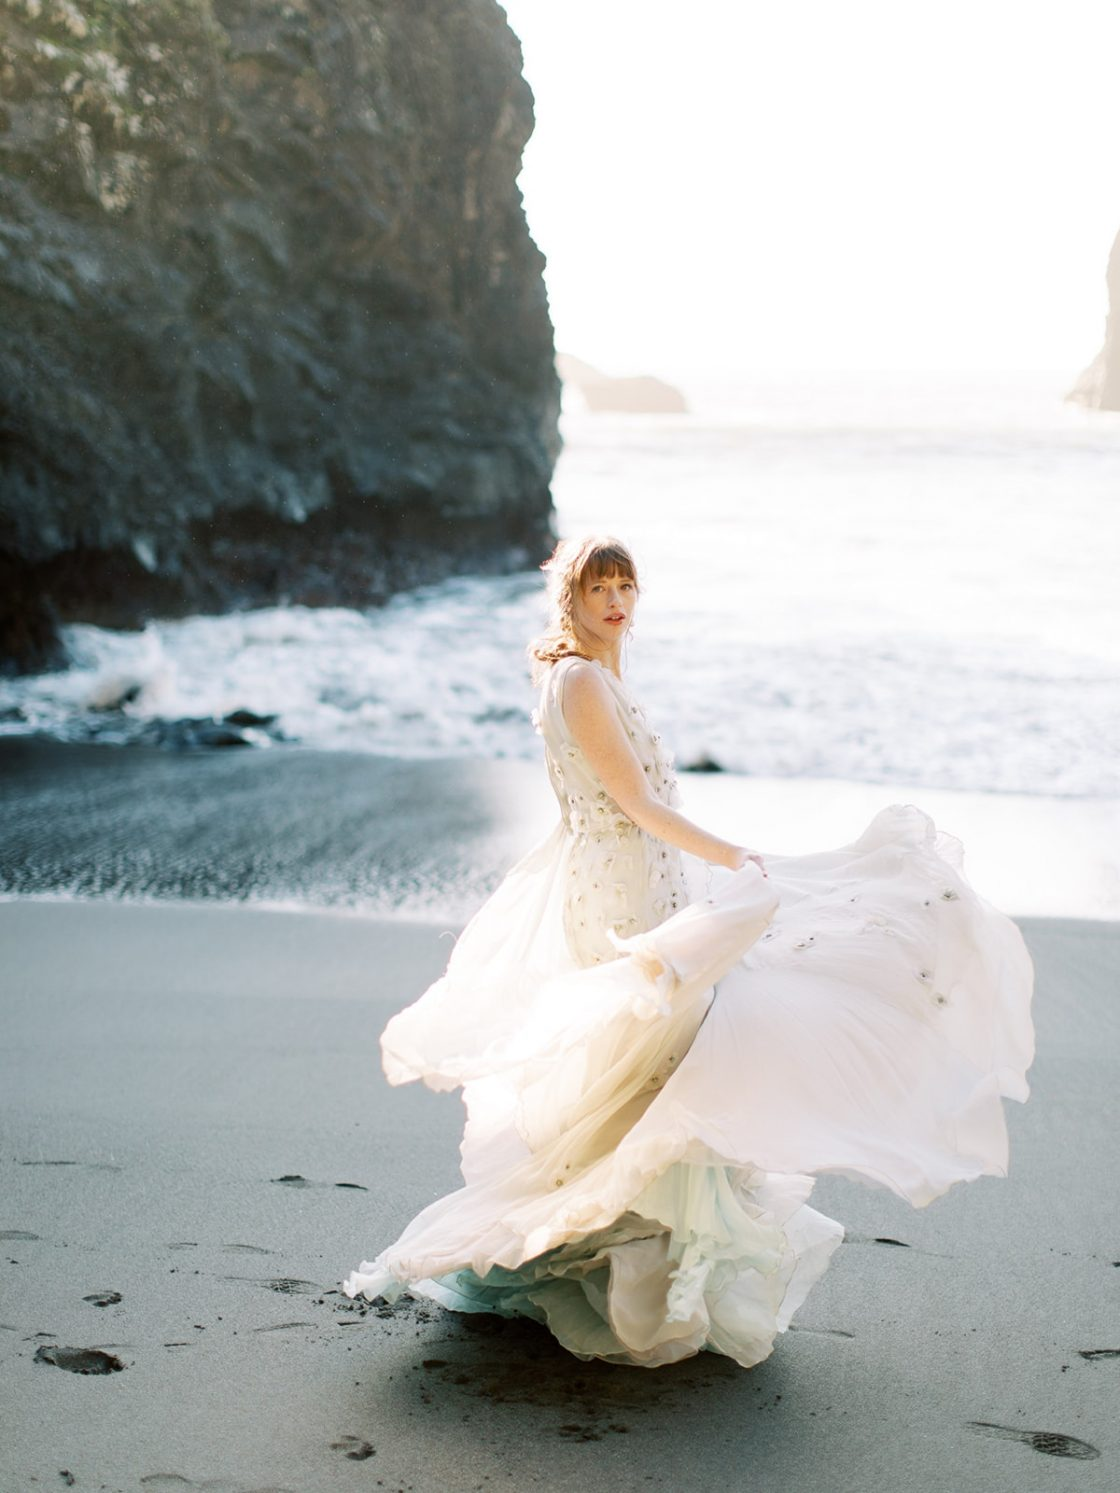 Pacific Ocean Sea Inspired Wedding by Sean Smith Photography 3